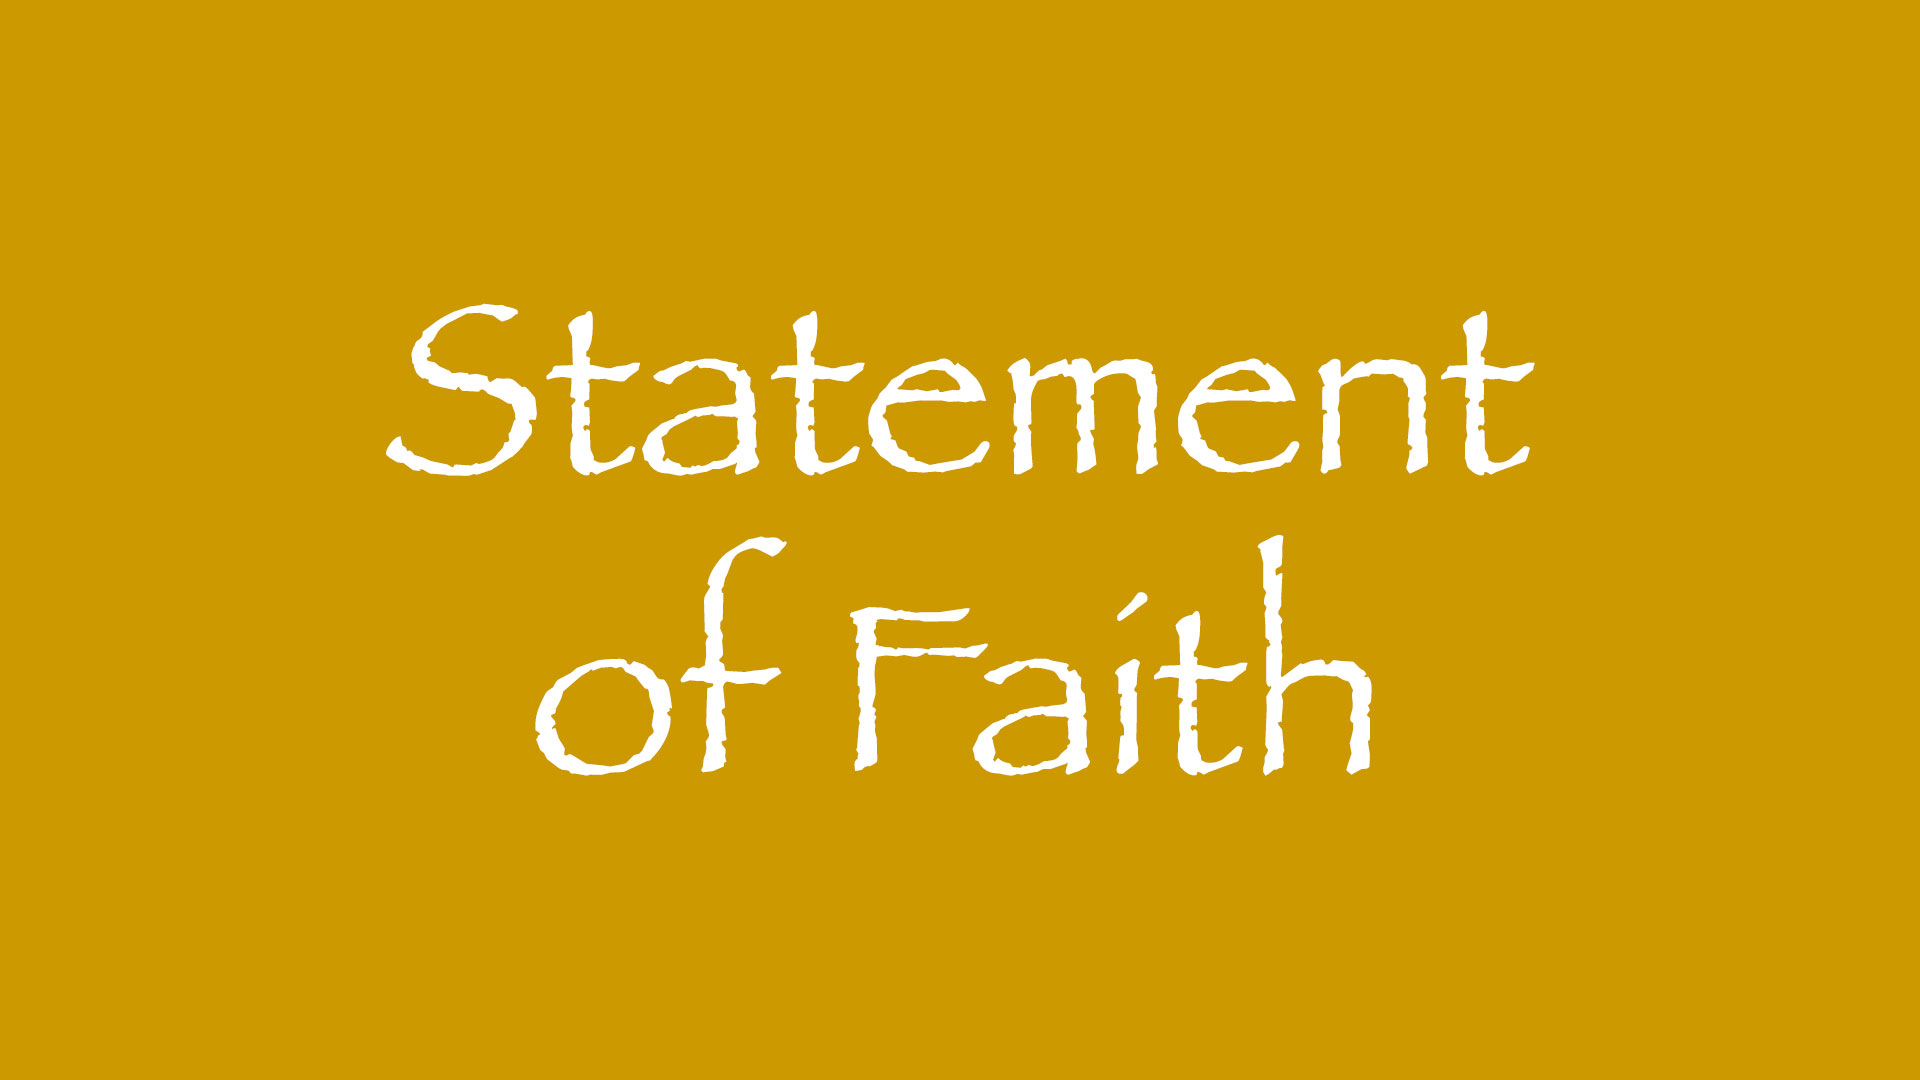 about salt ventures - statement of faith